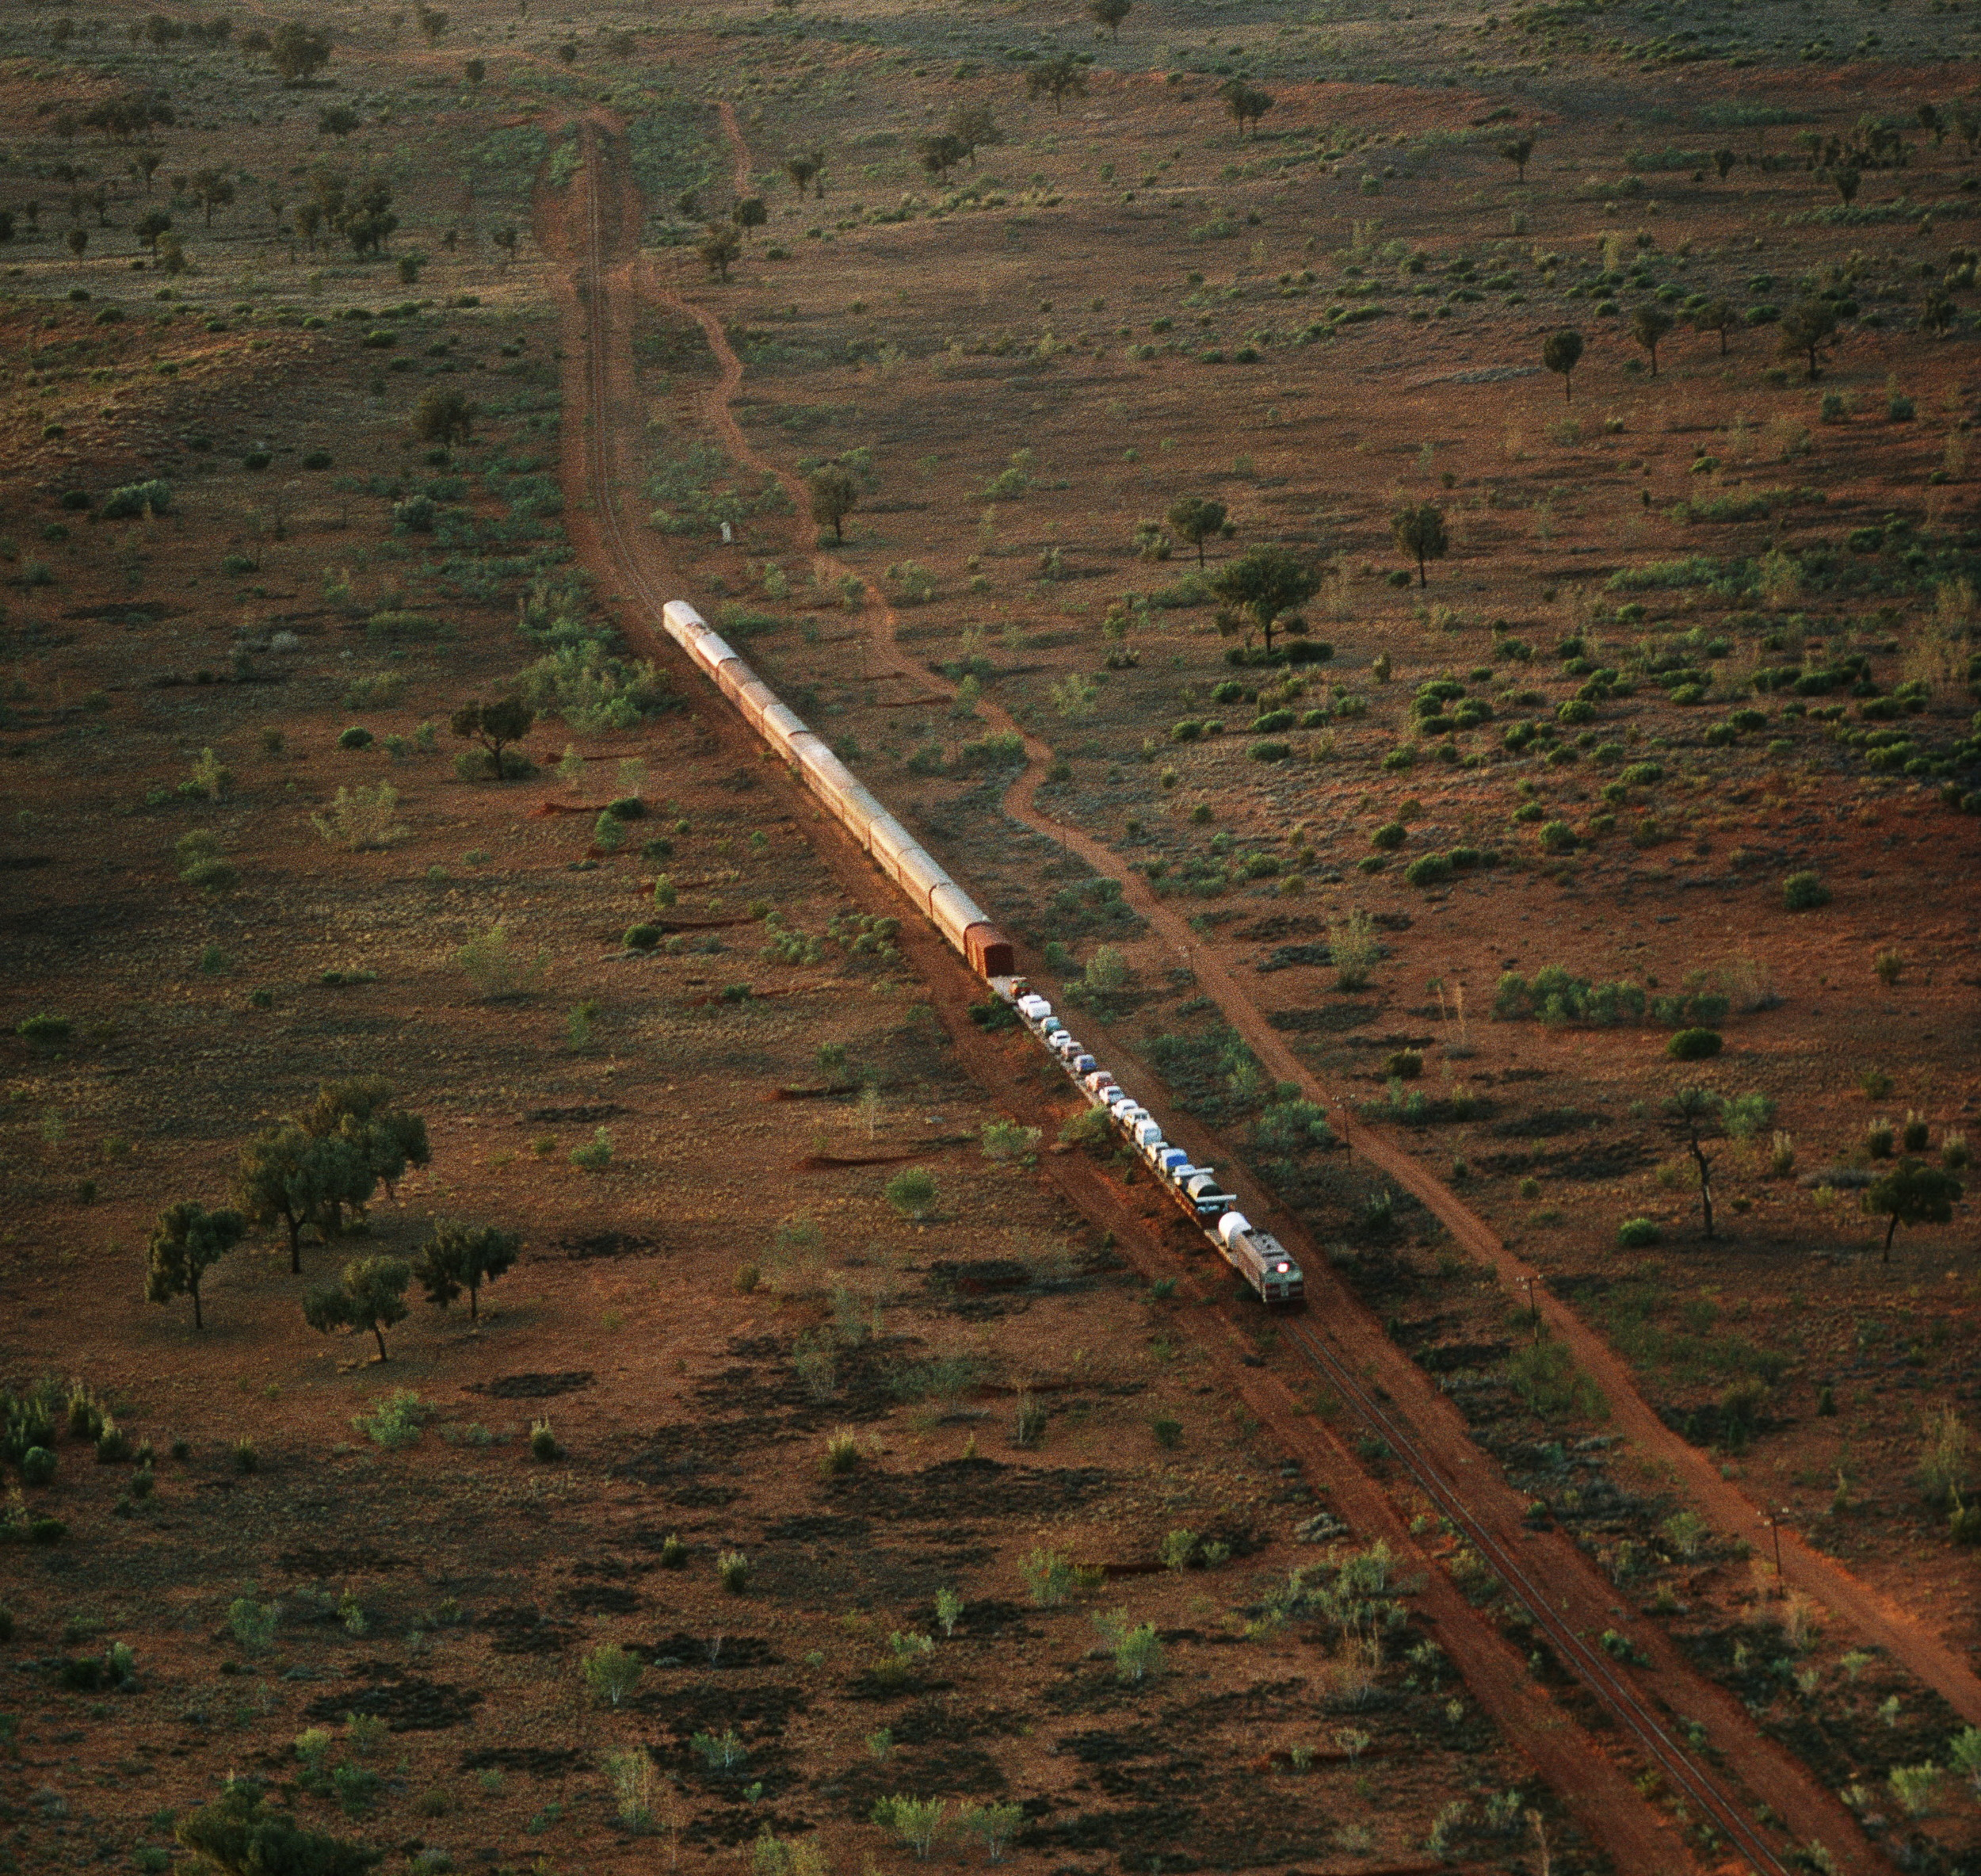 The beginning of Robyn Davidson's journey starts with a train ride to Alice Springs. © Rick Smolan/Against All Odds Productions